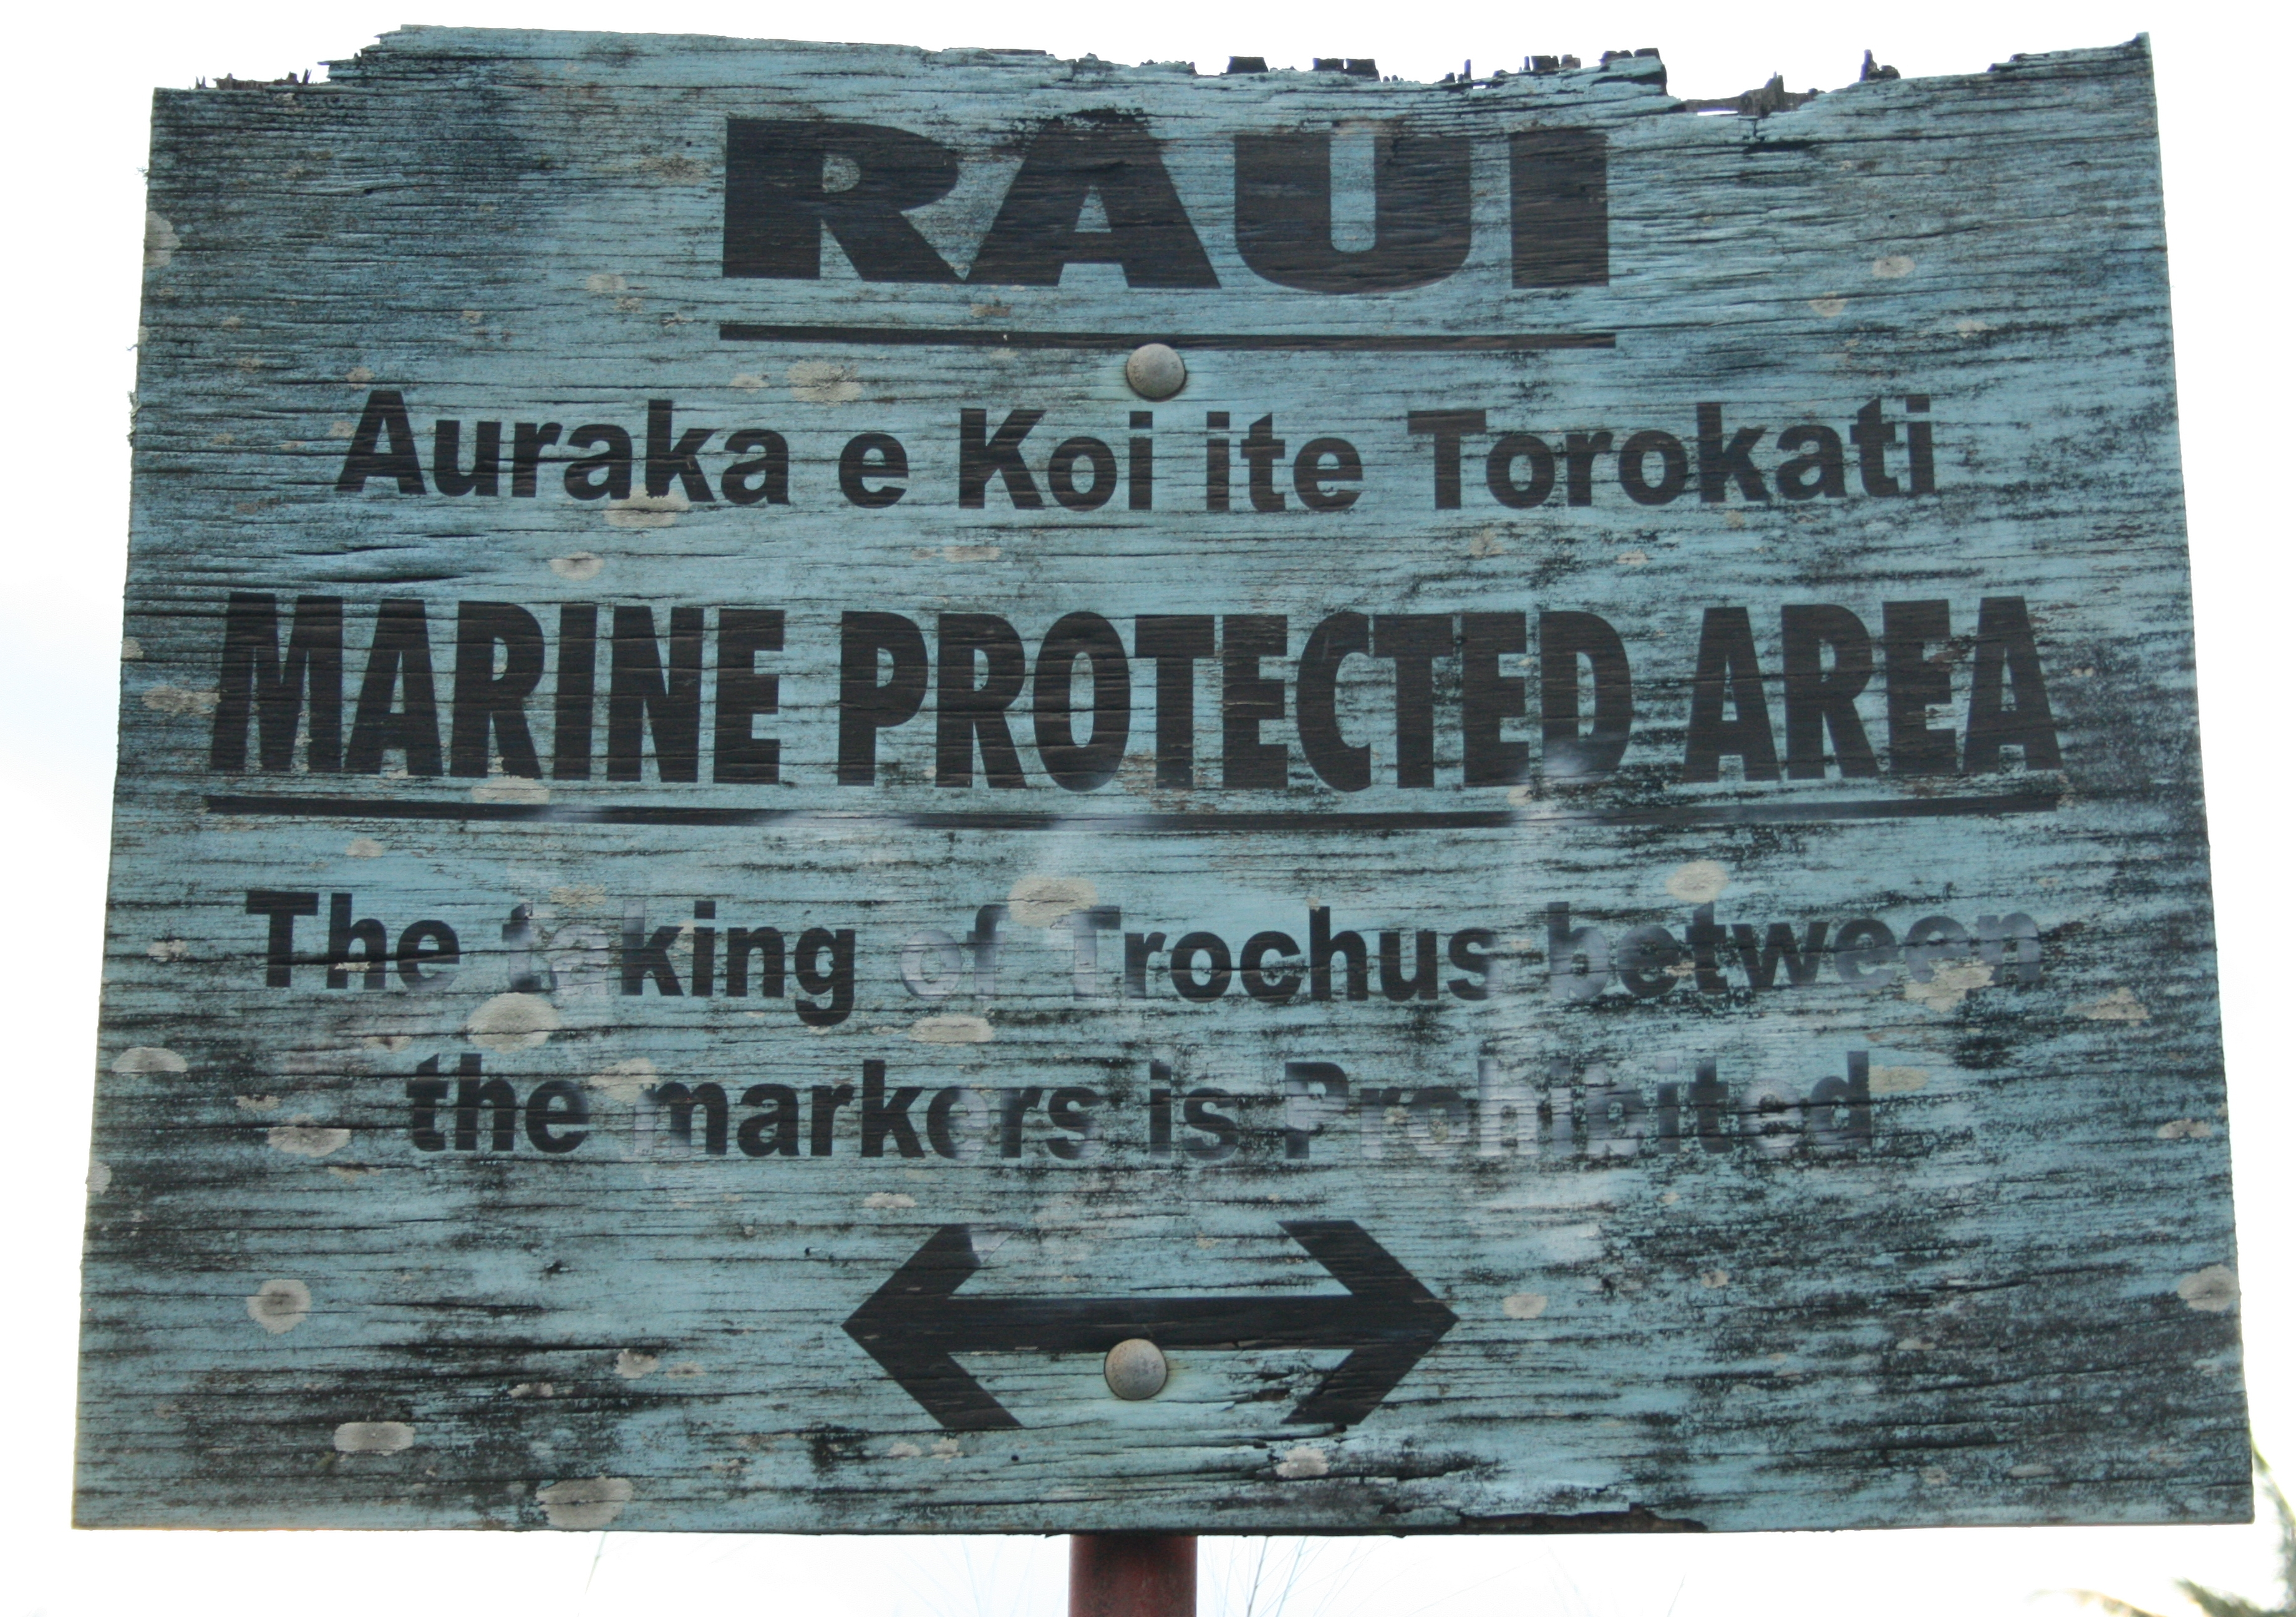 A sign prohibiting activity within a marine protected area in the Cook Islands